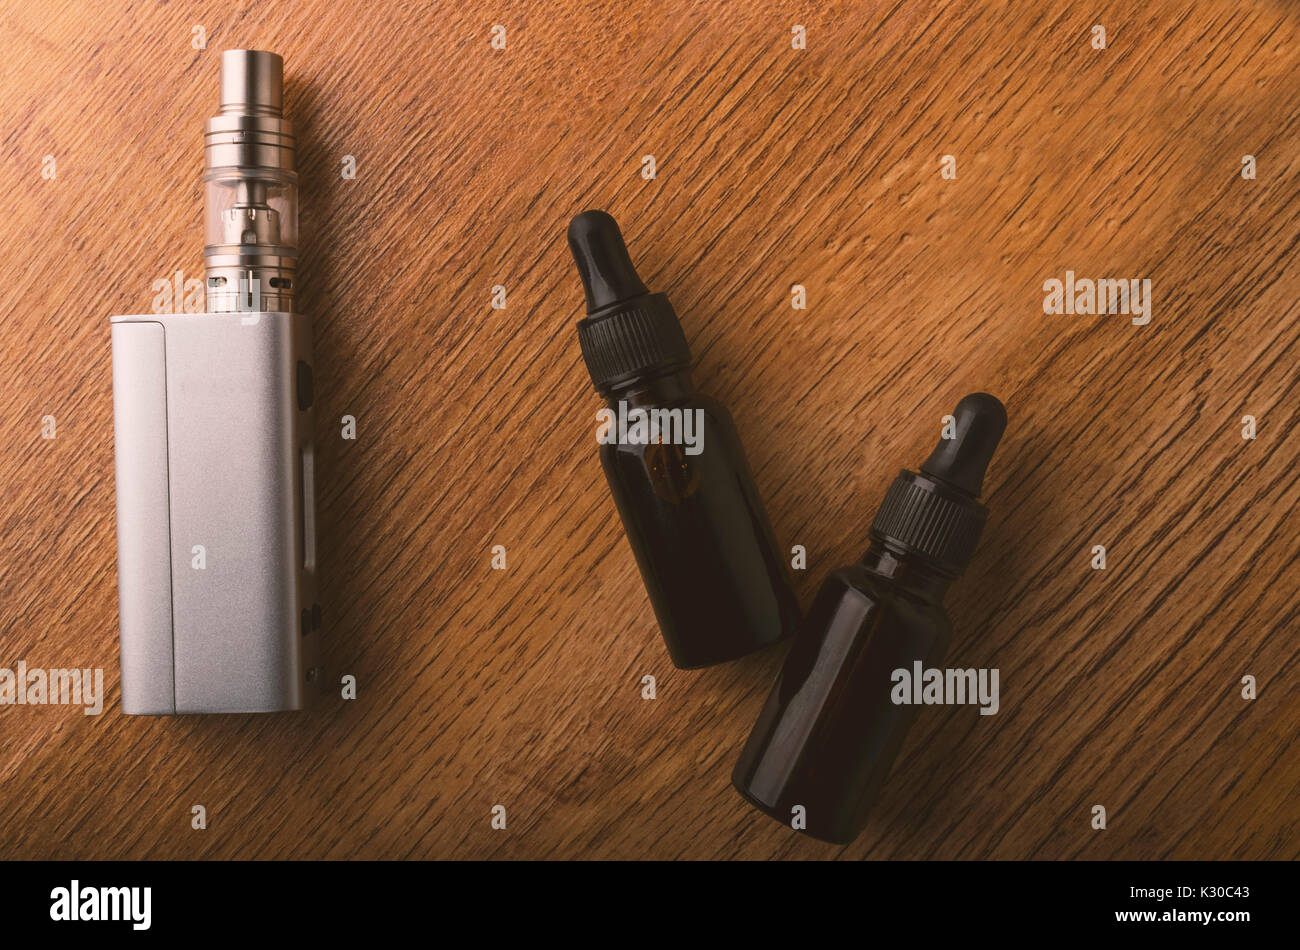 tools for vaping device, electronic cigarette, e-cigarette, box mod, accessories isolated over a wooden background. for vaping shops. - Stock Image